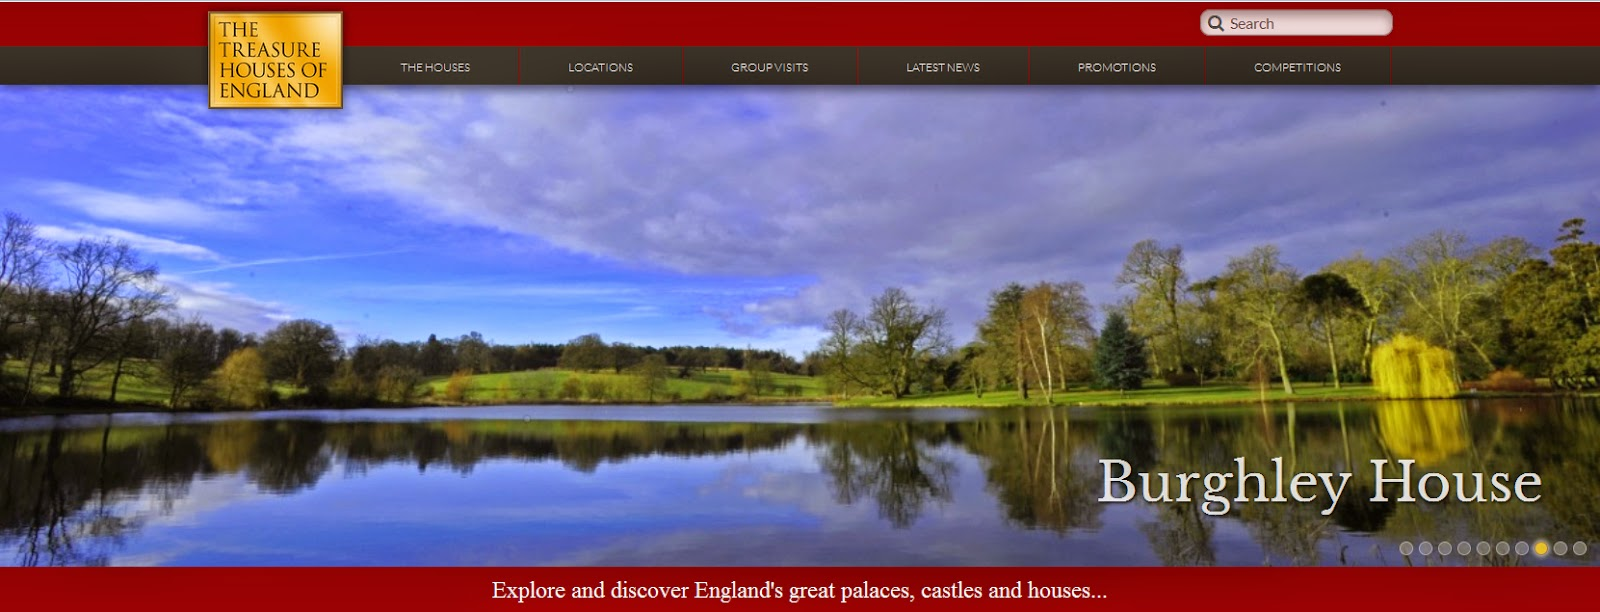 http://www.treasurehouses.co.uk/houses/Burghley+House